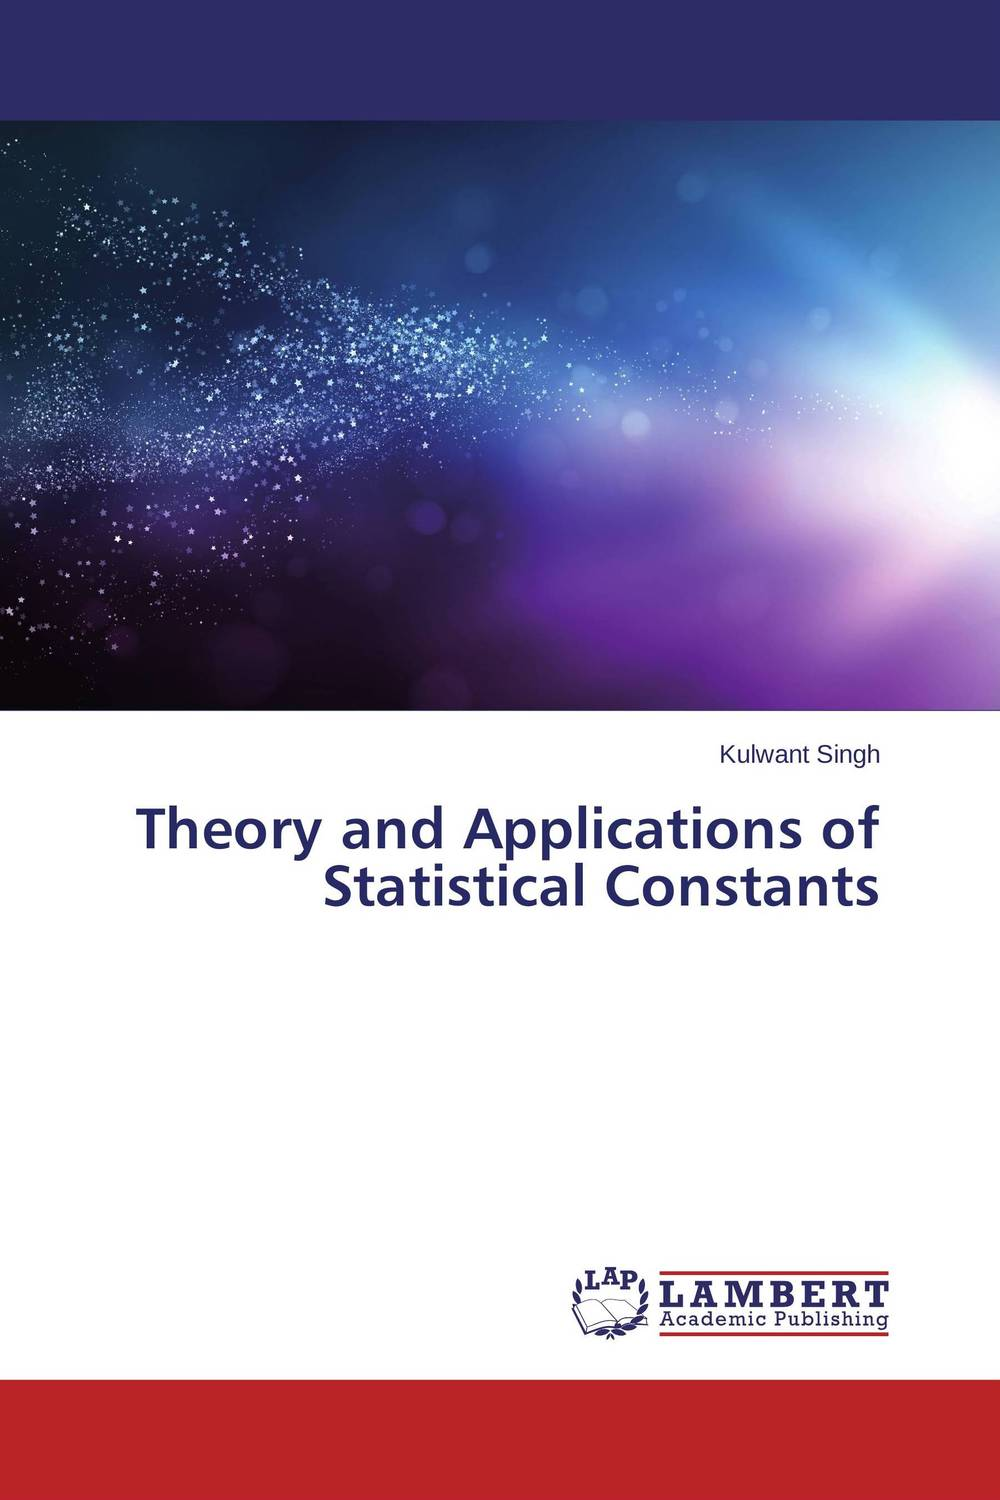 Theory and Applications of Statistical Constants